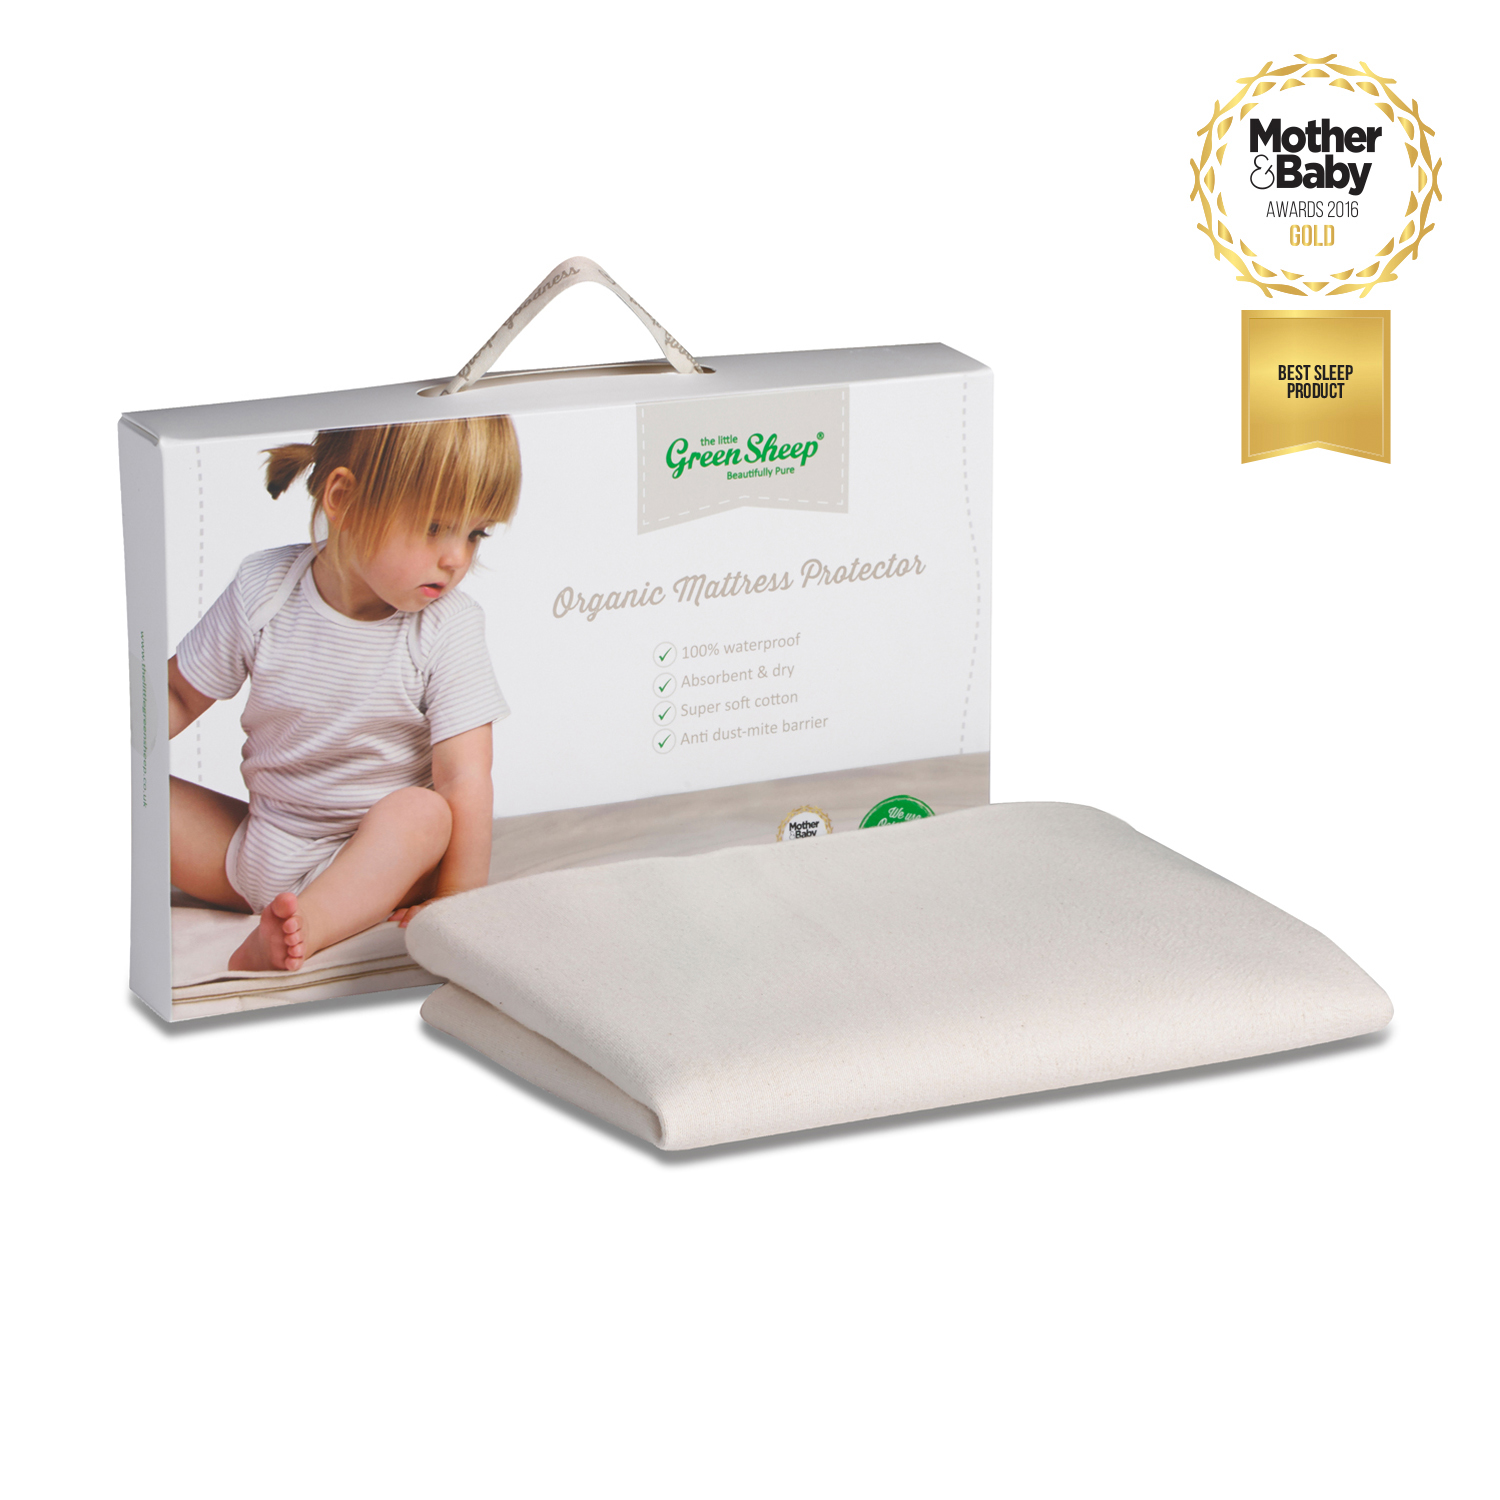 The Little Green Sheep Waterproof Stokke Mini Mattress Protector